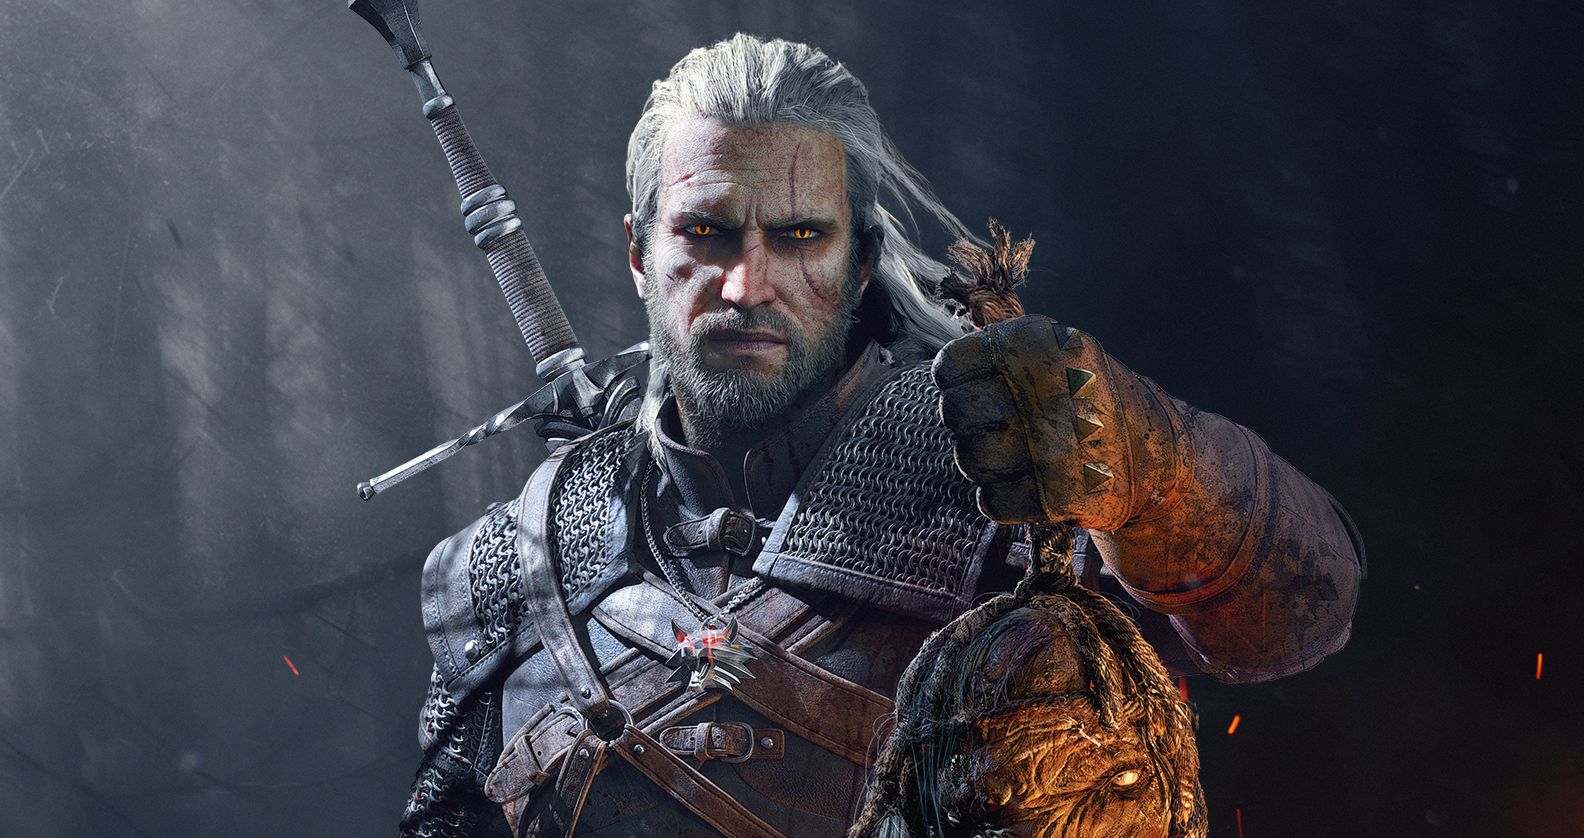 La série The Witcher de Netflix se détaille